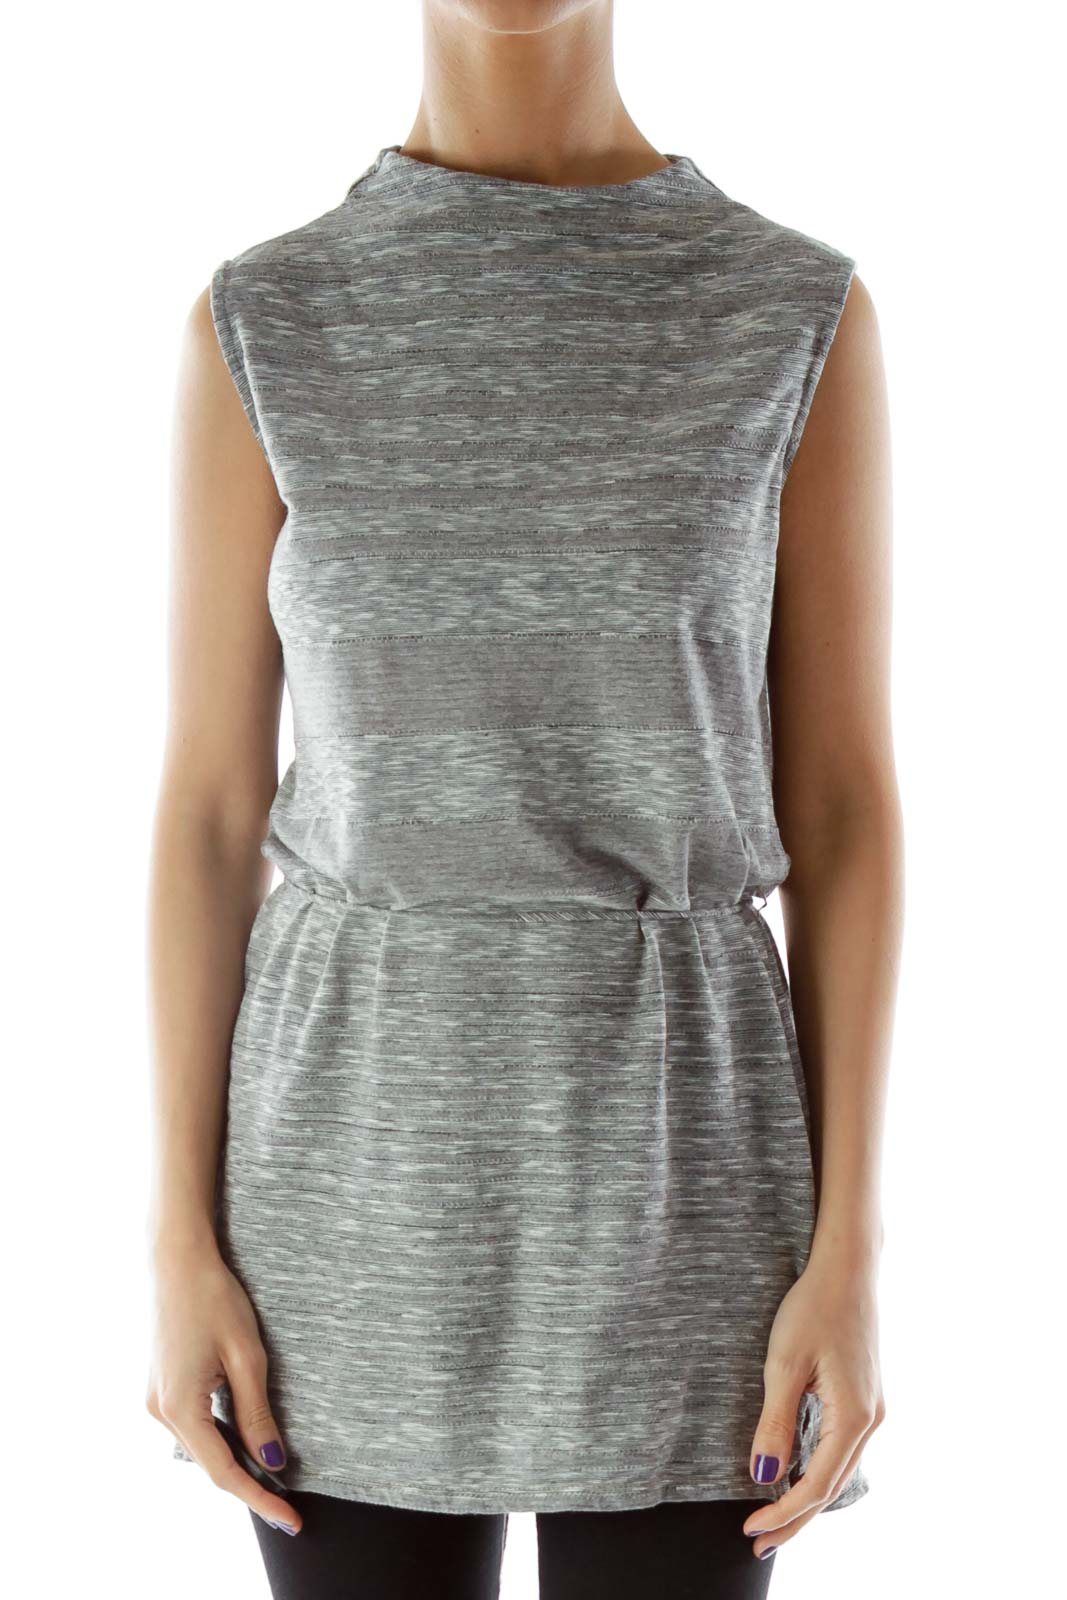 Gray Slitted Sleeveless Blouse with High Neck Front